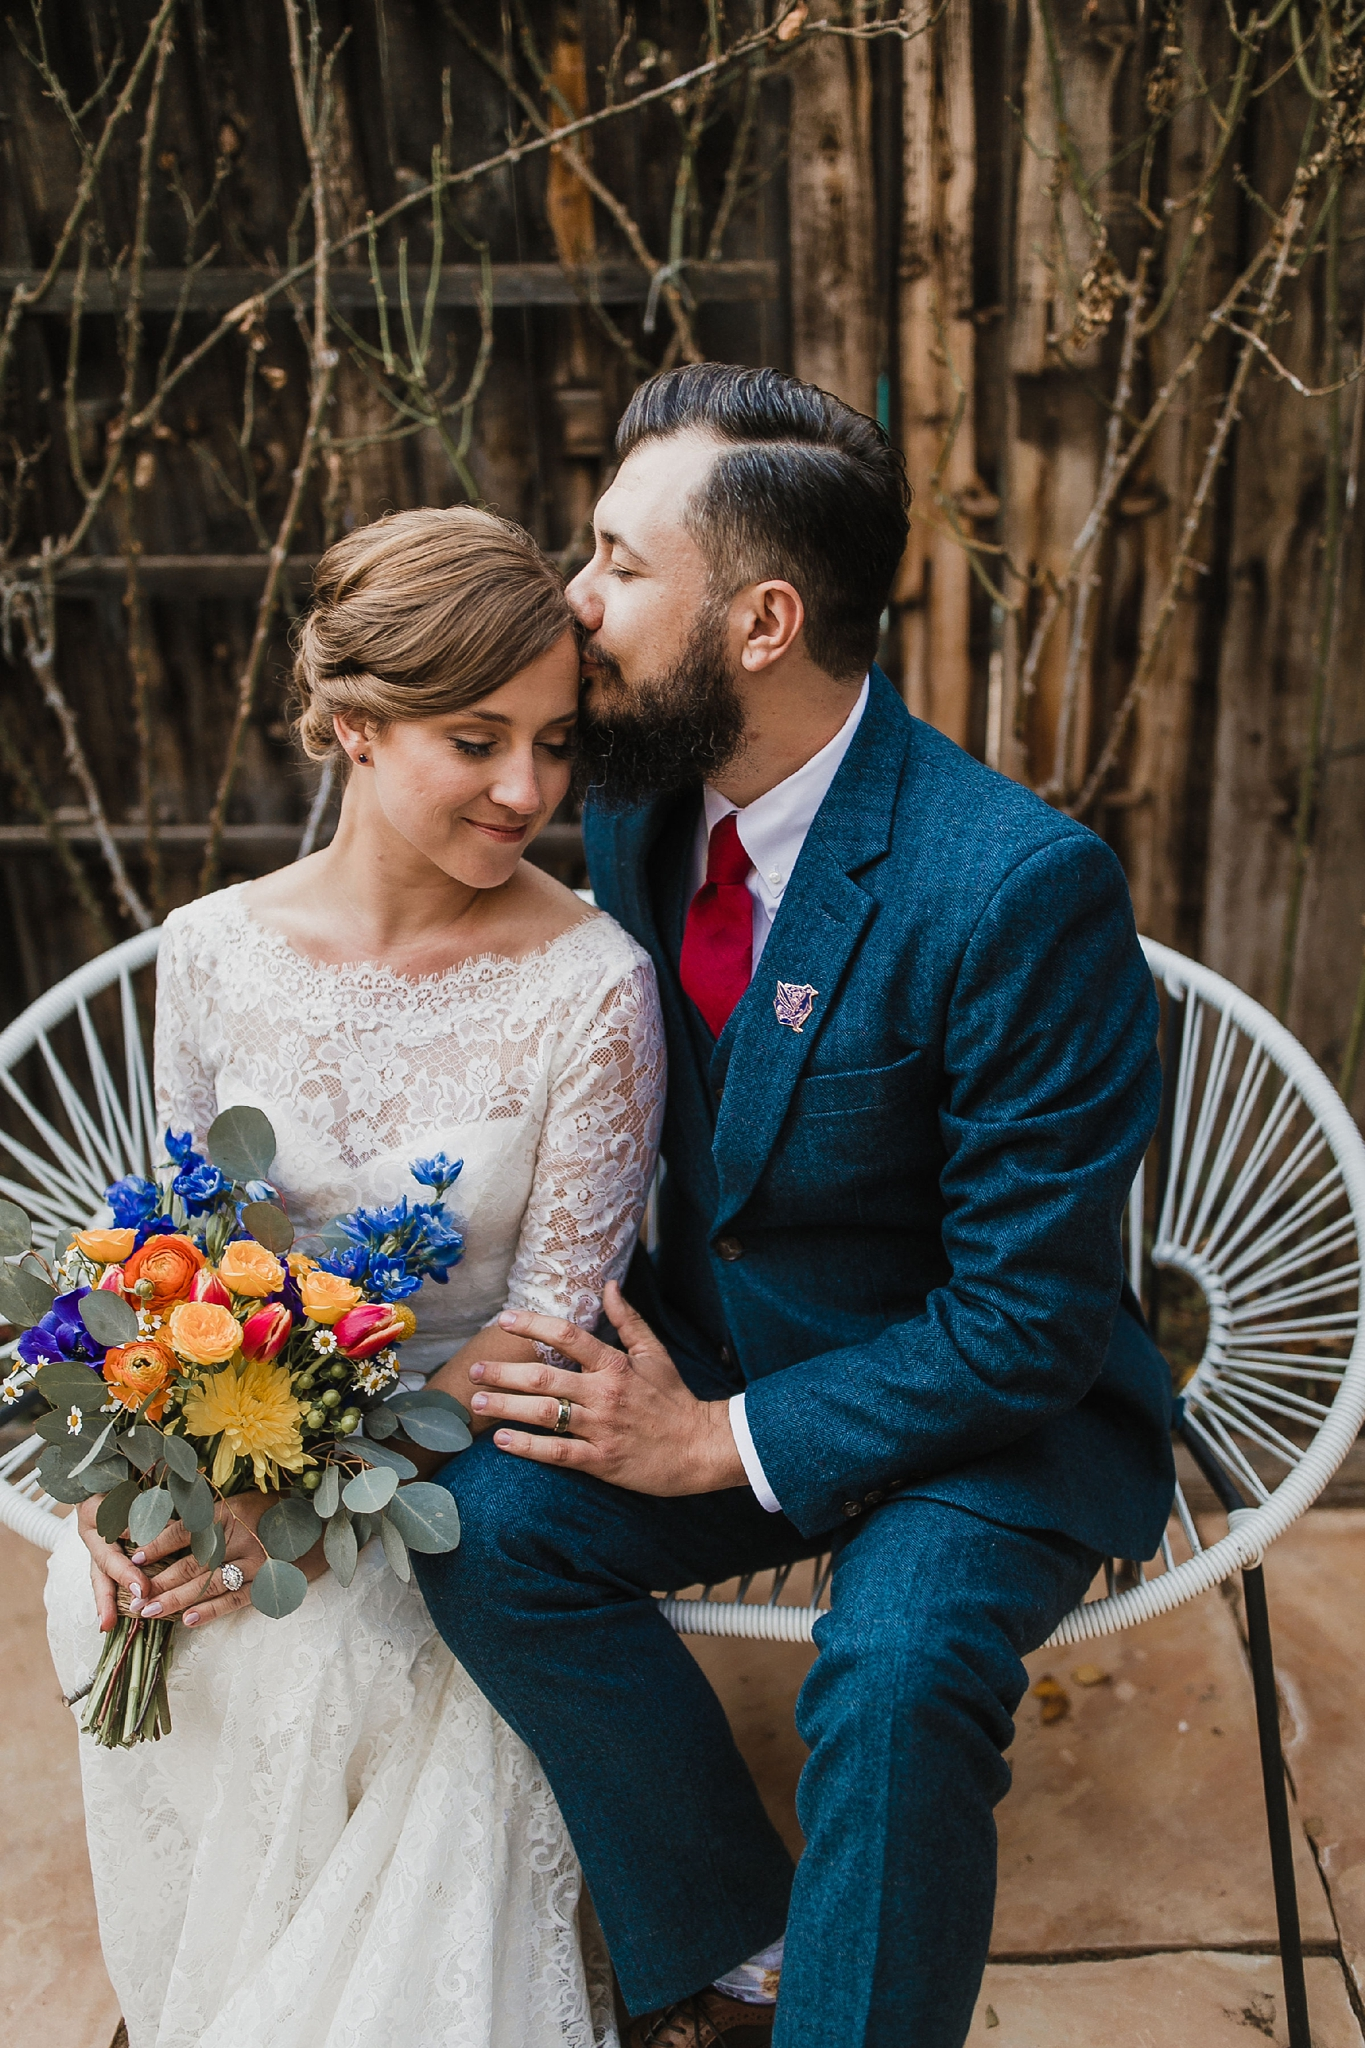 Alicia+lucia+photography+-+albuquerque+wedding+photographer+-+santa+fe+wedding+photography+-+new+mexico+wedding+photographer+-+albuquerque+wedding+-+sarabande+bed+breakfast+-+bed+and+breakfast+wedding_0076.jpg